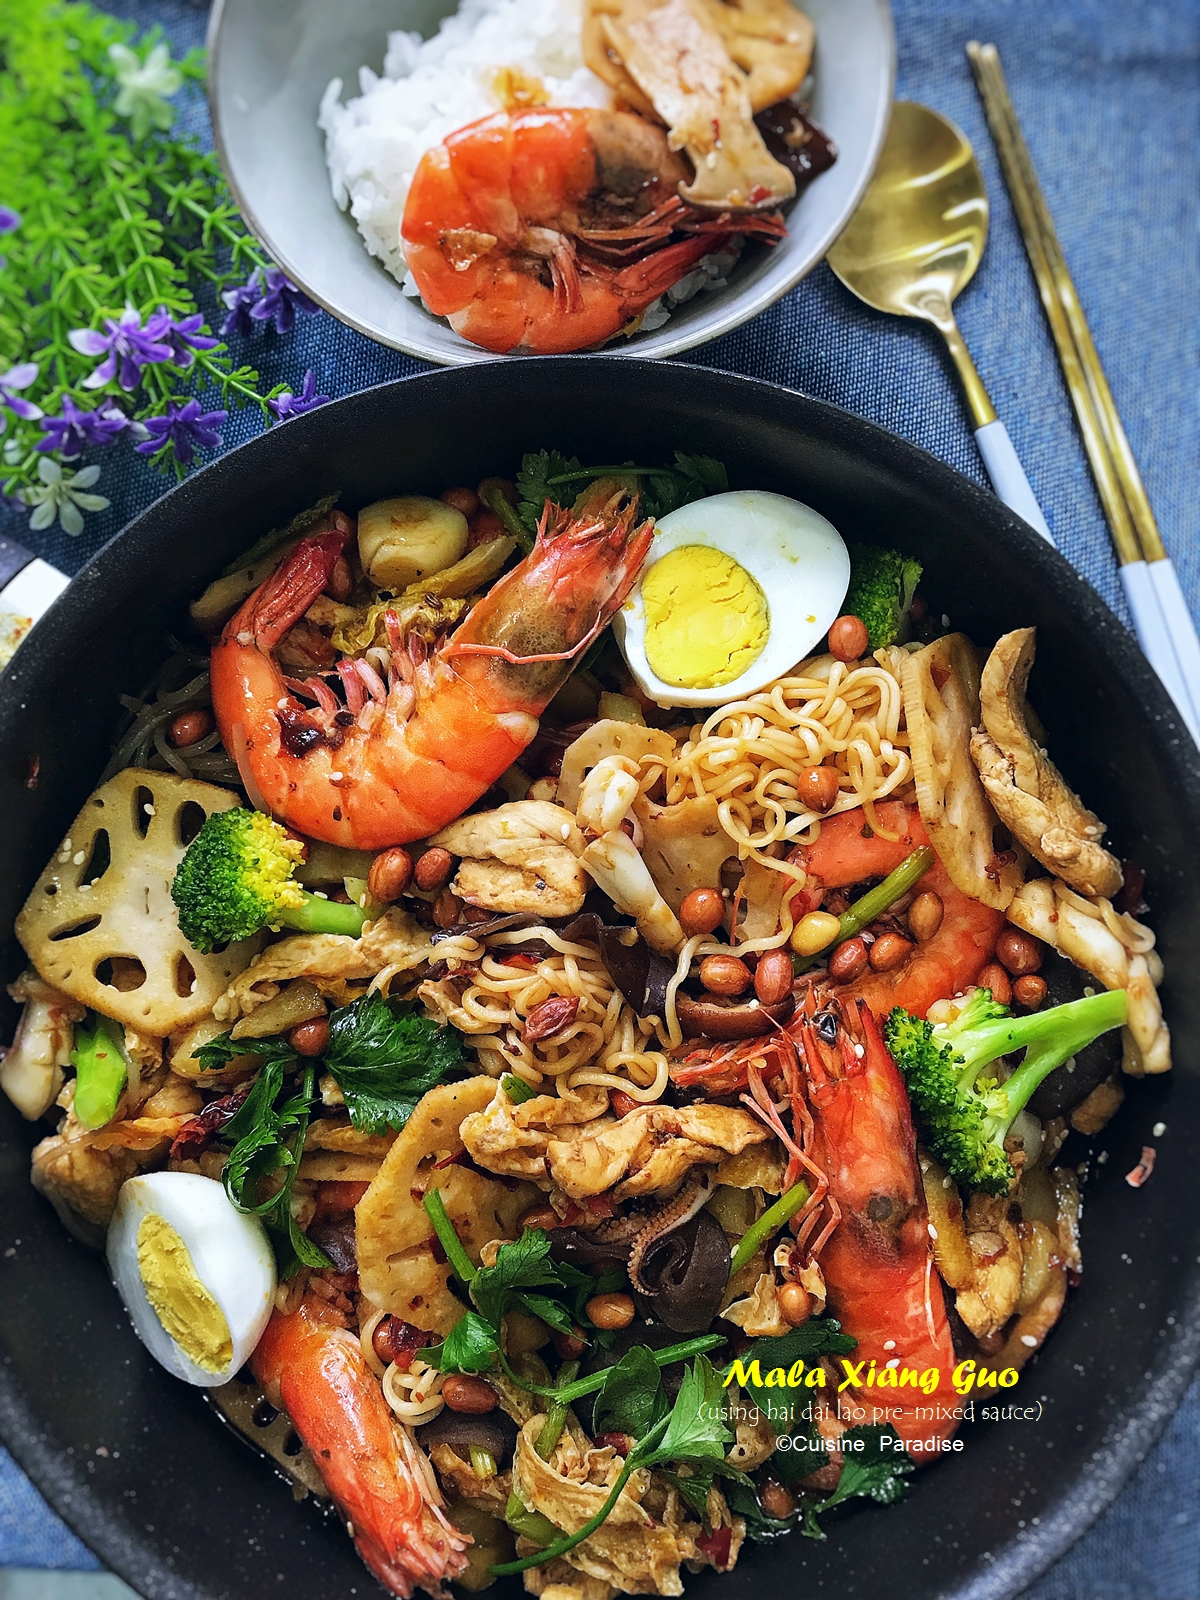 Cuisine paradise singapore food blog recipes reviews and travel recipe video mala xiang guo forumfinder Images